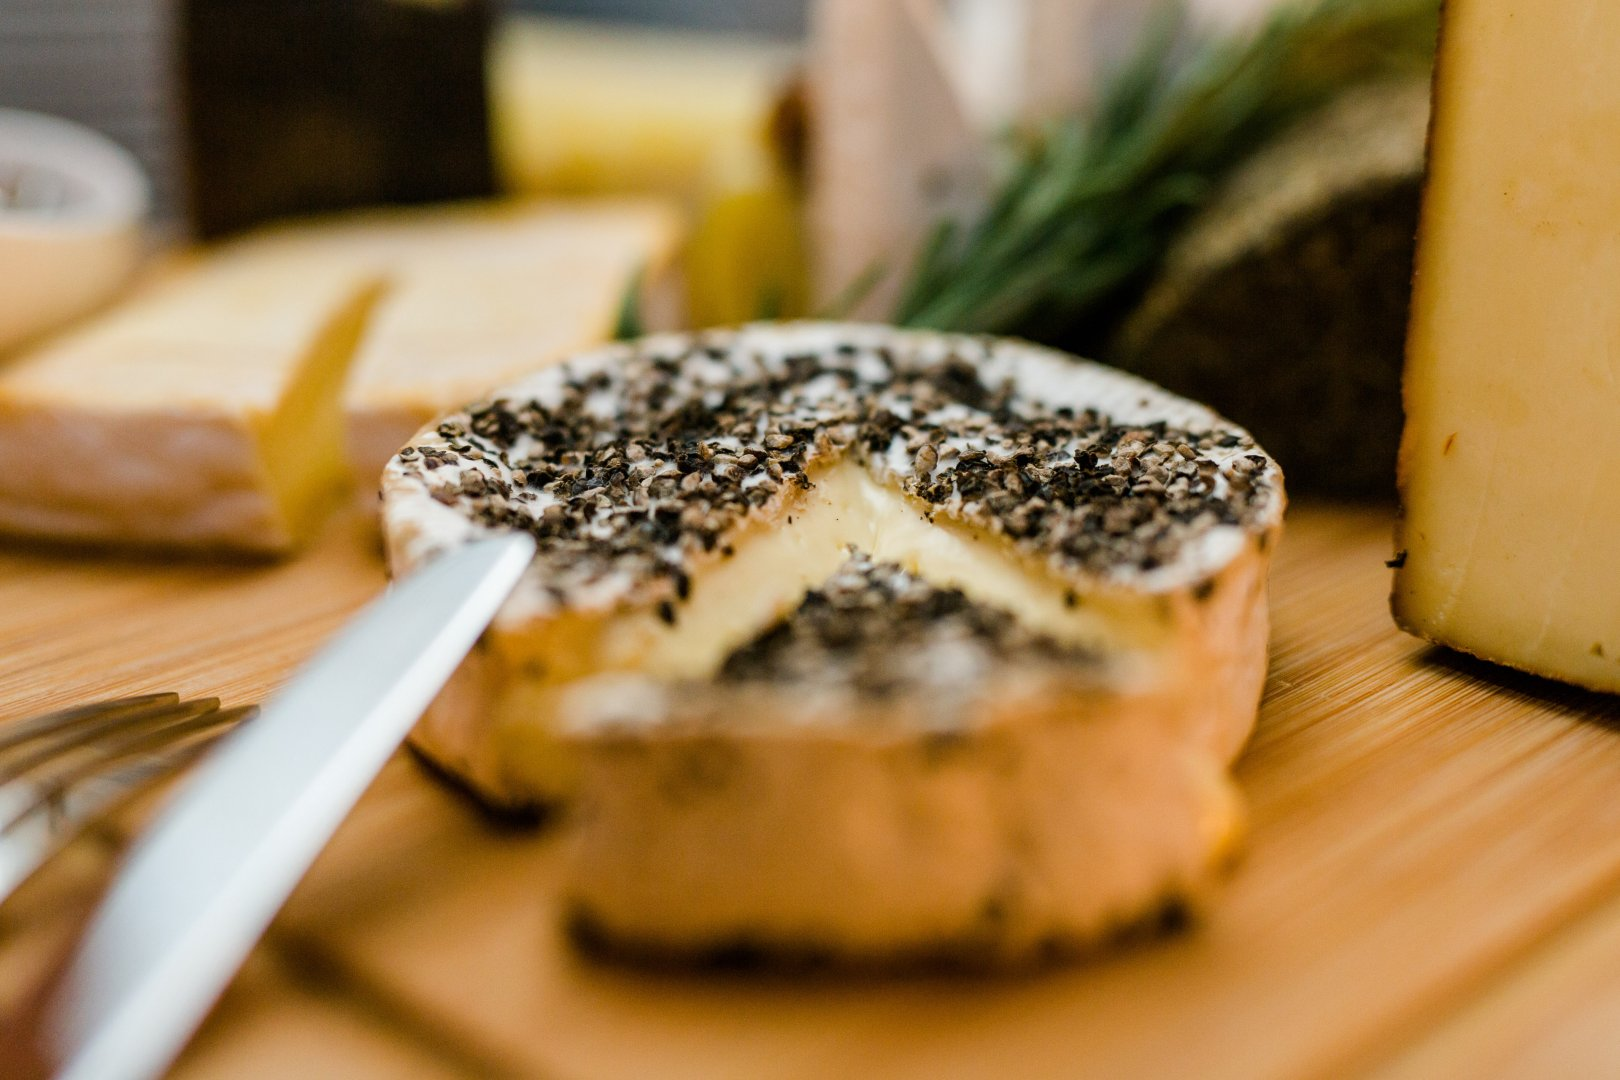 Food Dish Cuisine Ingredient Gorgonzola Blue cheese À la carte food Comfort food Produce Camembert Cheese Recipe Dairy Cheese